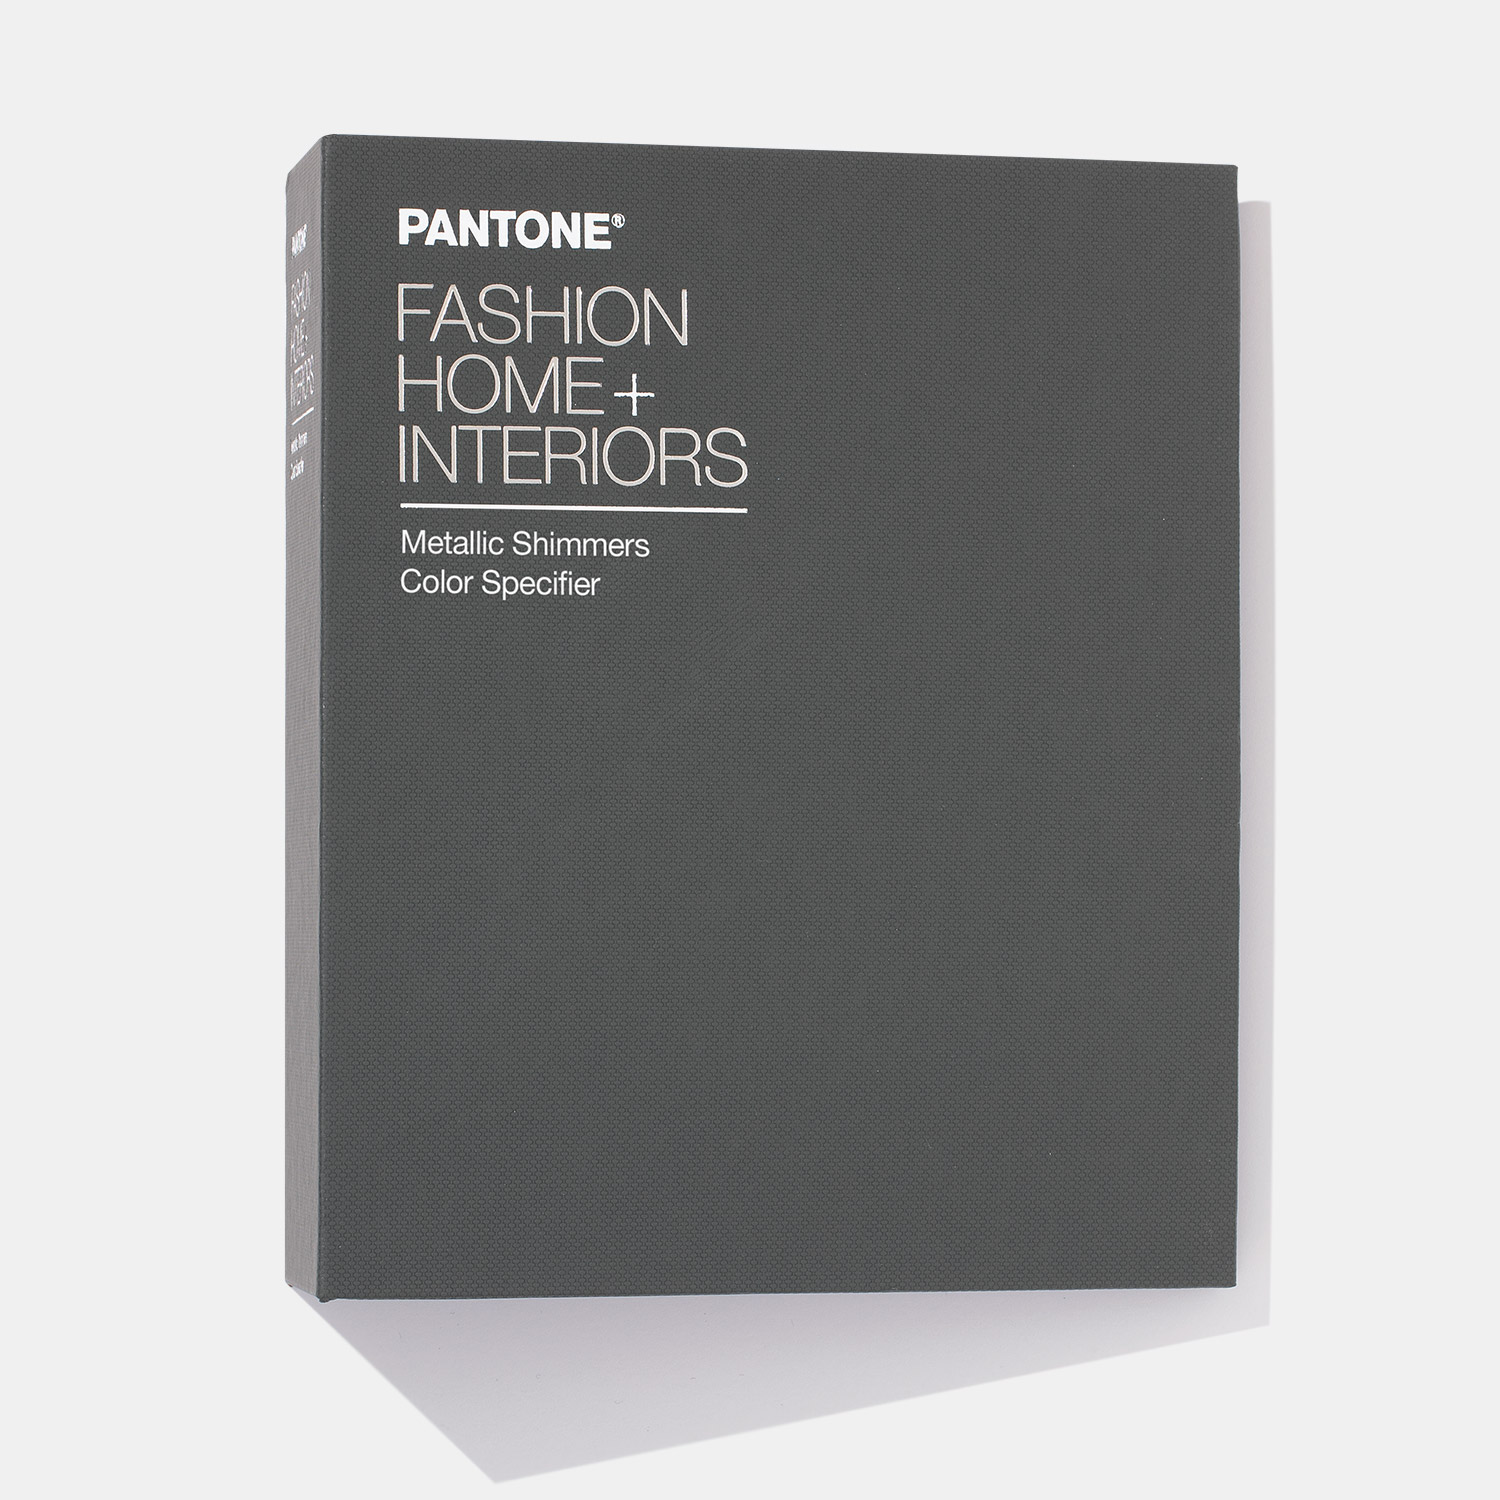 Pantone Fashion, Home + Interiors Metallic Shimmers Color Specifier